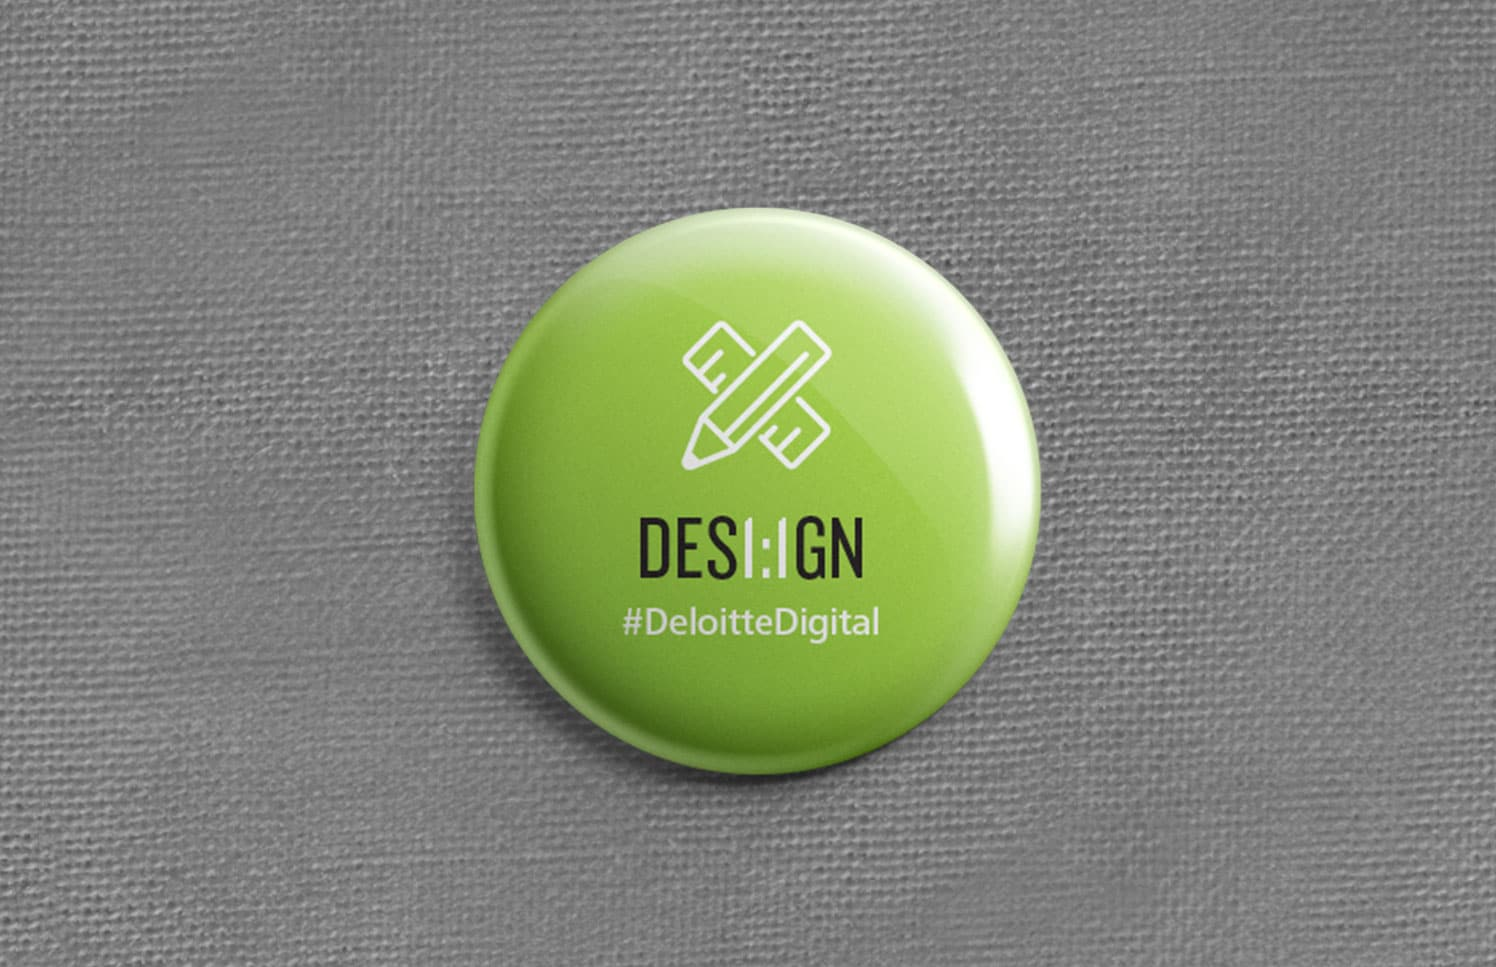 Photo of green dot design button